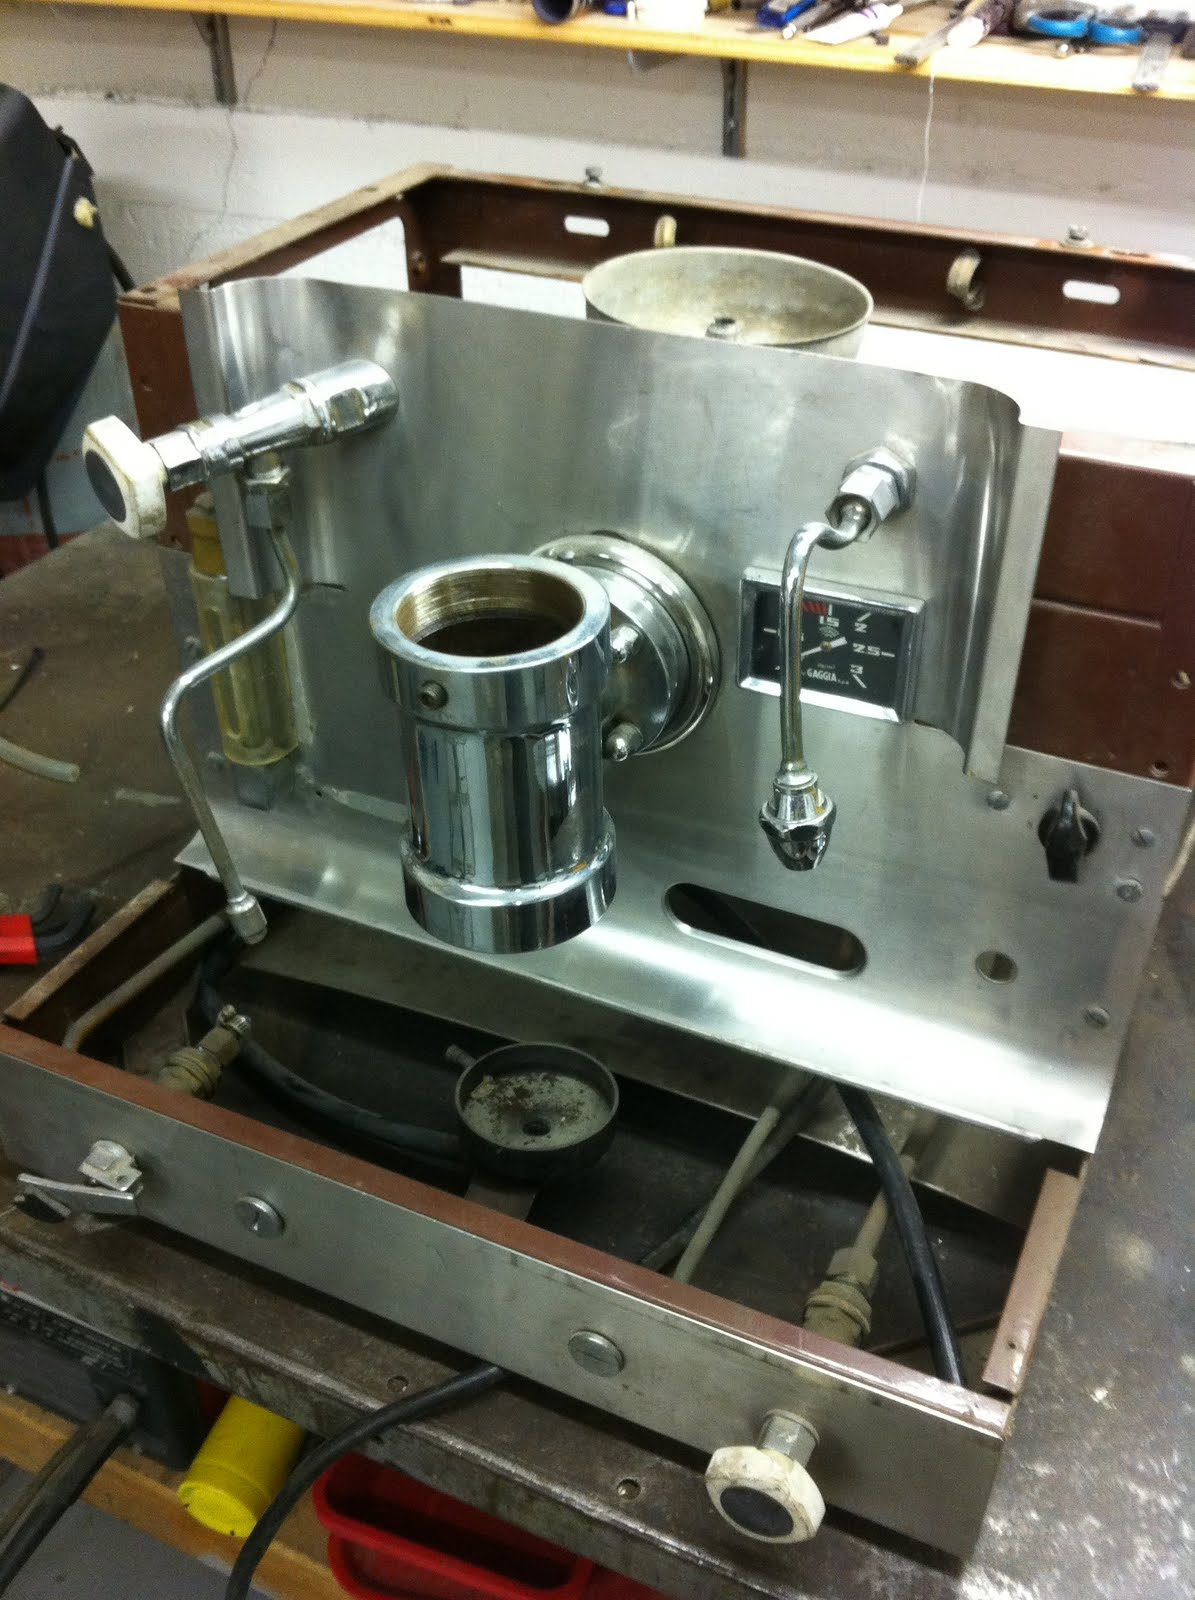 Coffee Maker Repair San Francisco : cafe gaggia orione: on the work bench